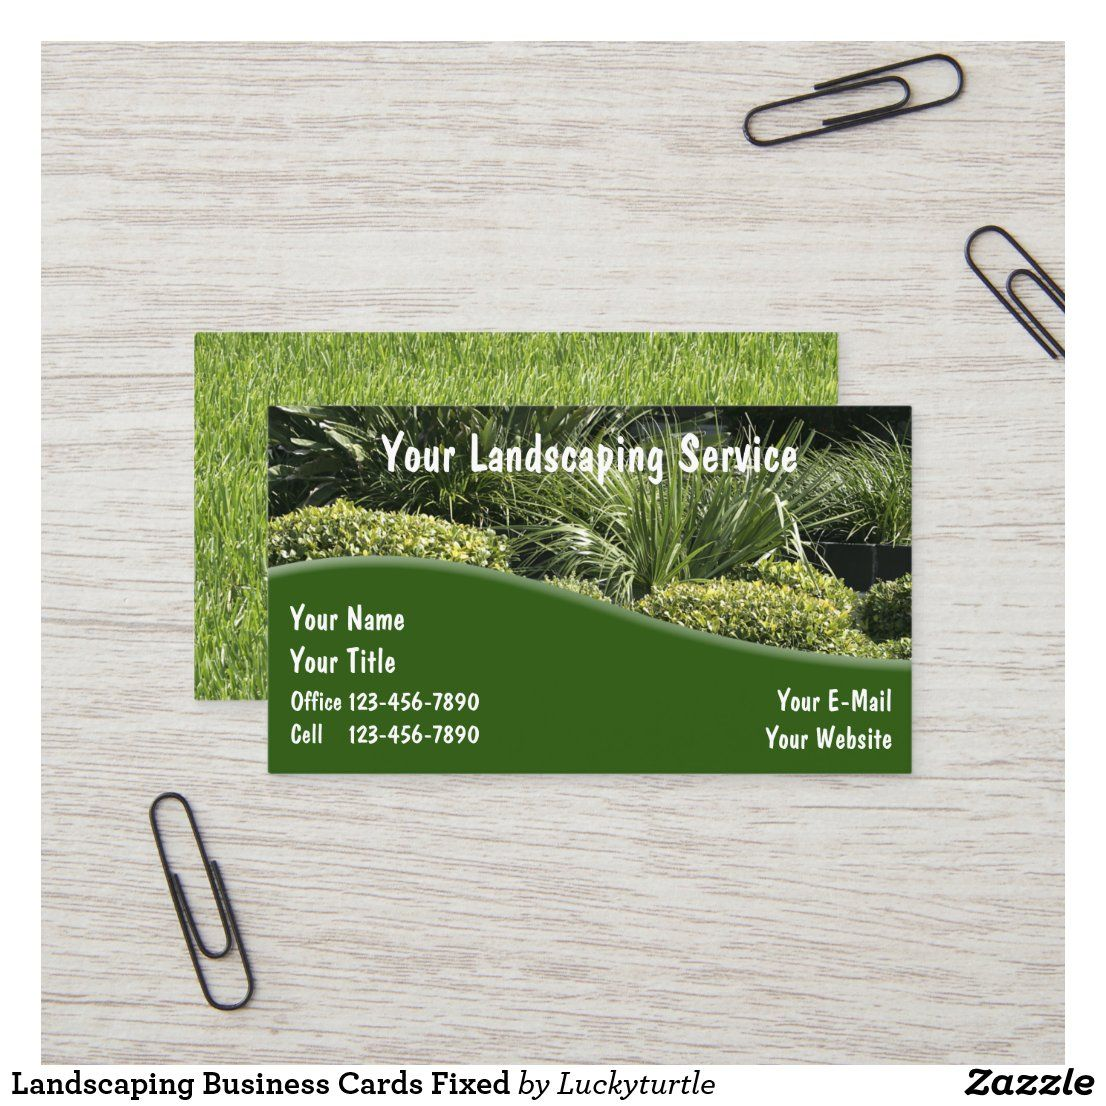 Landscaping Business Cards Fixed Zazzle Com Landscaping Business Cards Landscaping Business Lawn Care Business Cards